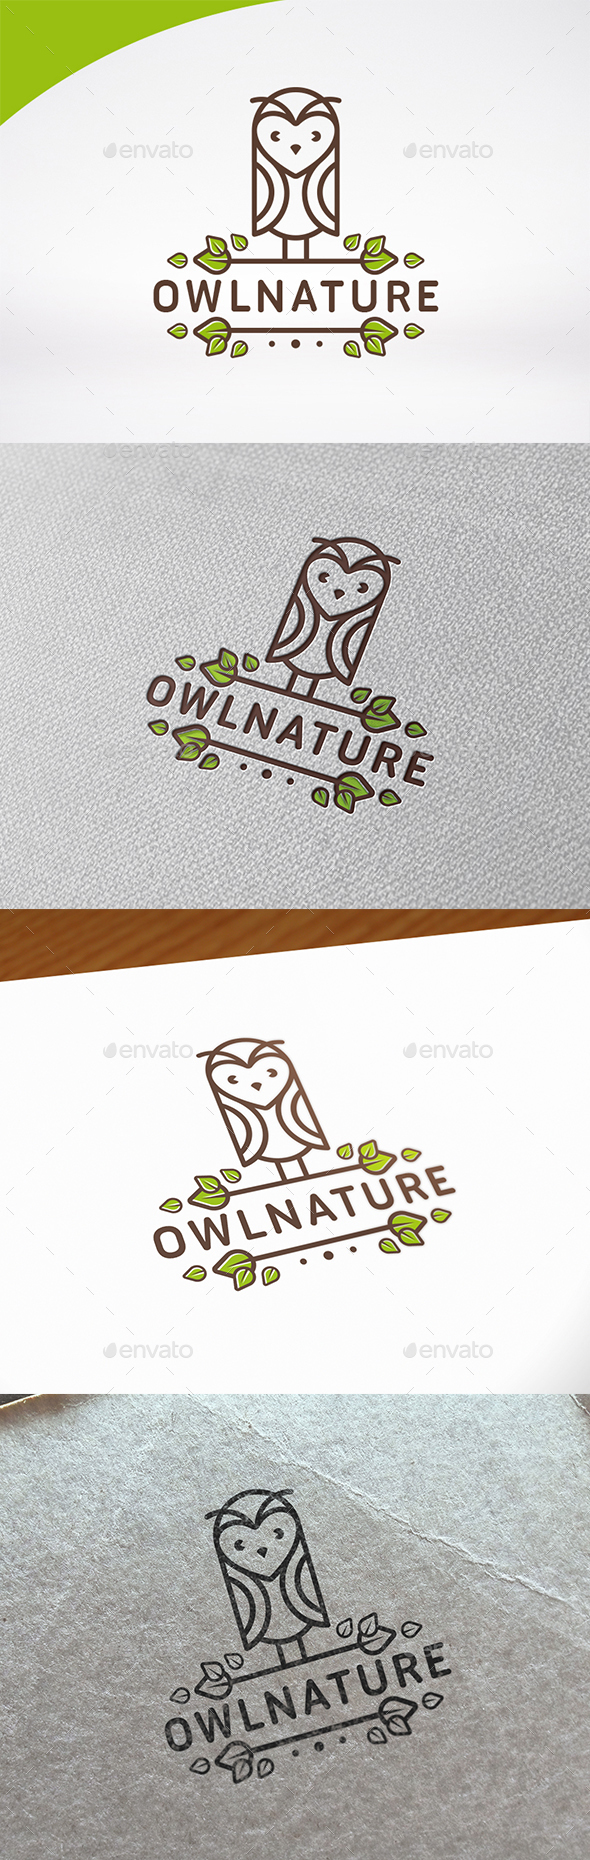 Owl Nature Logo Template - Animals Logo Templates